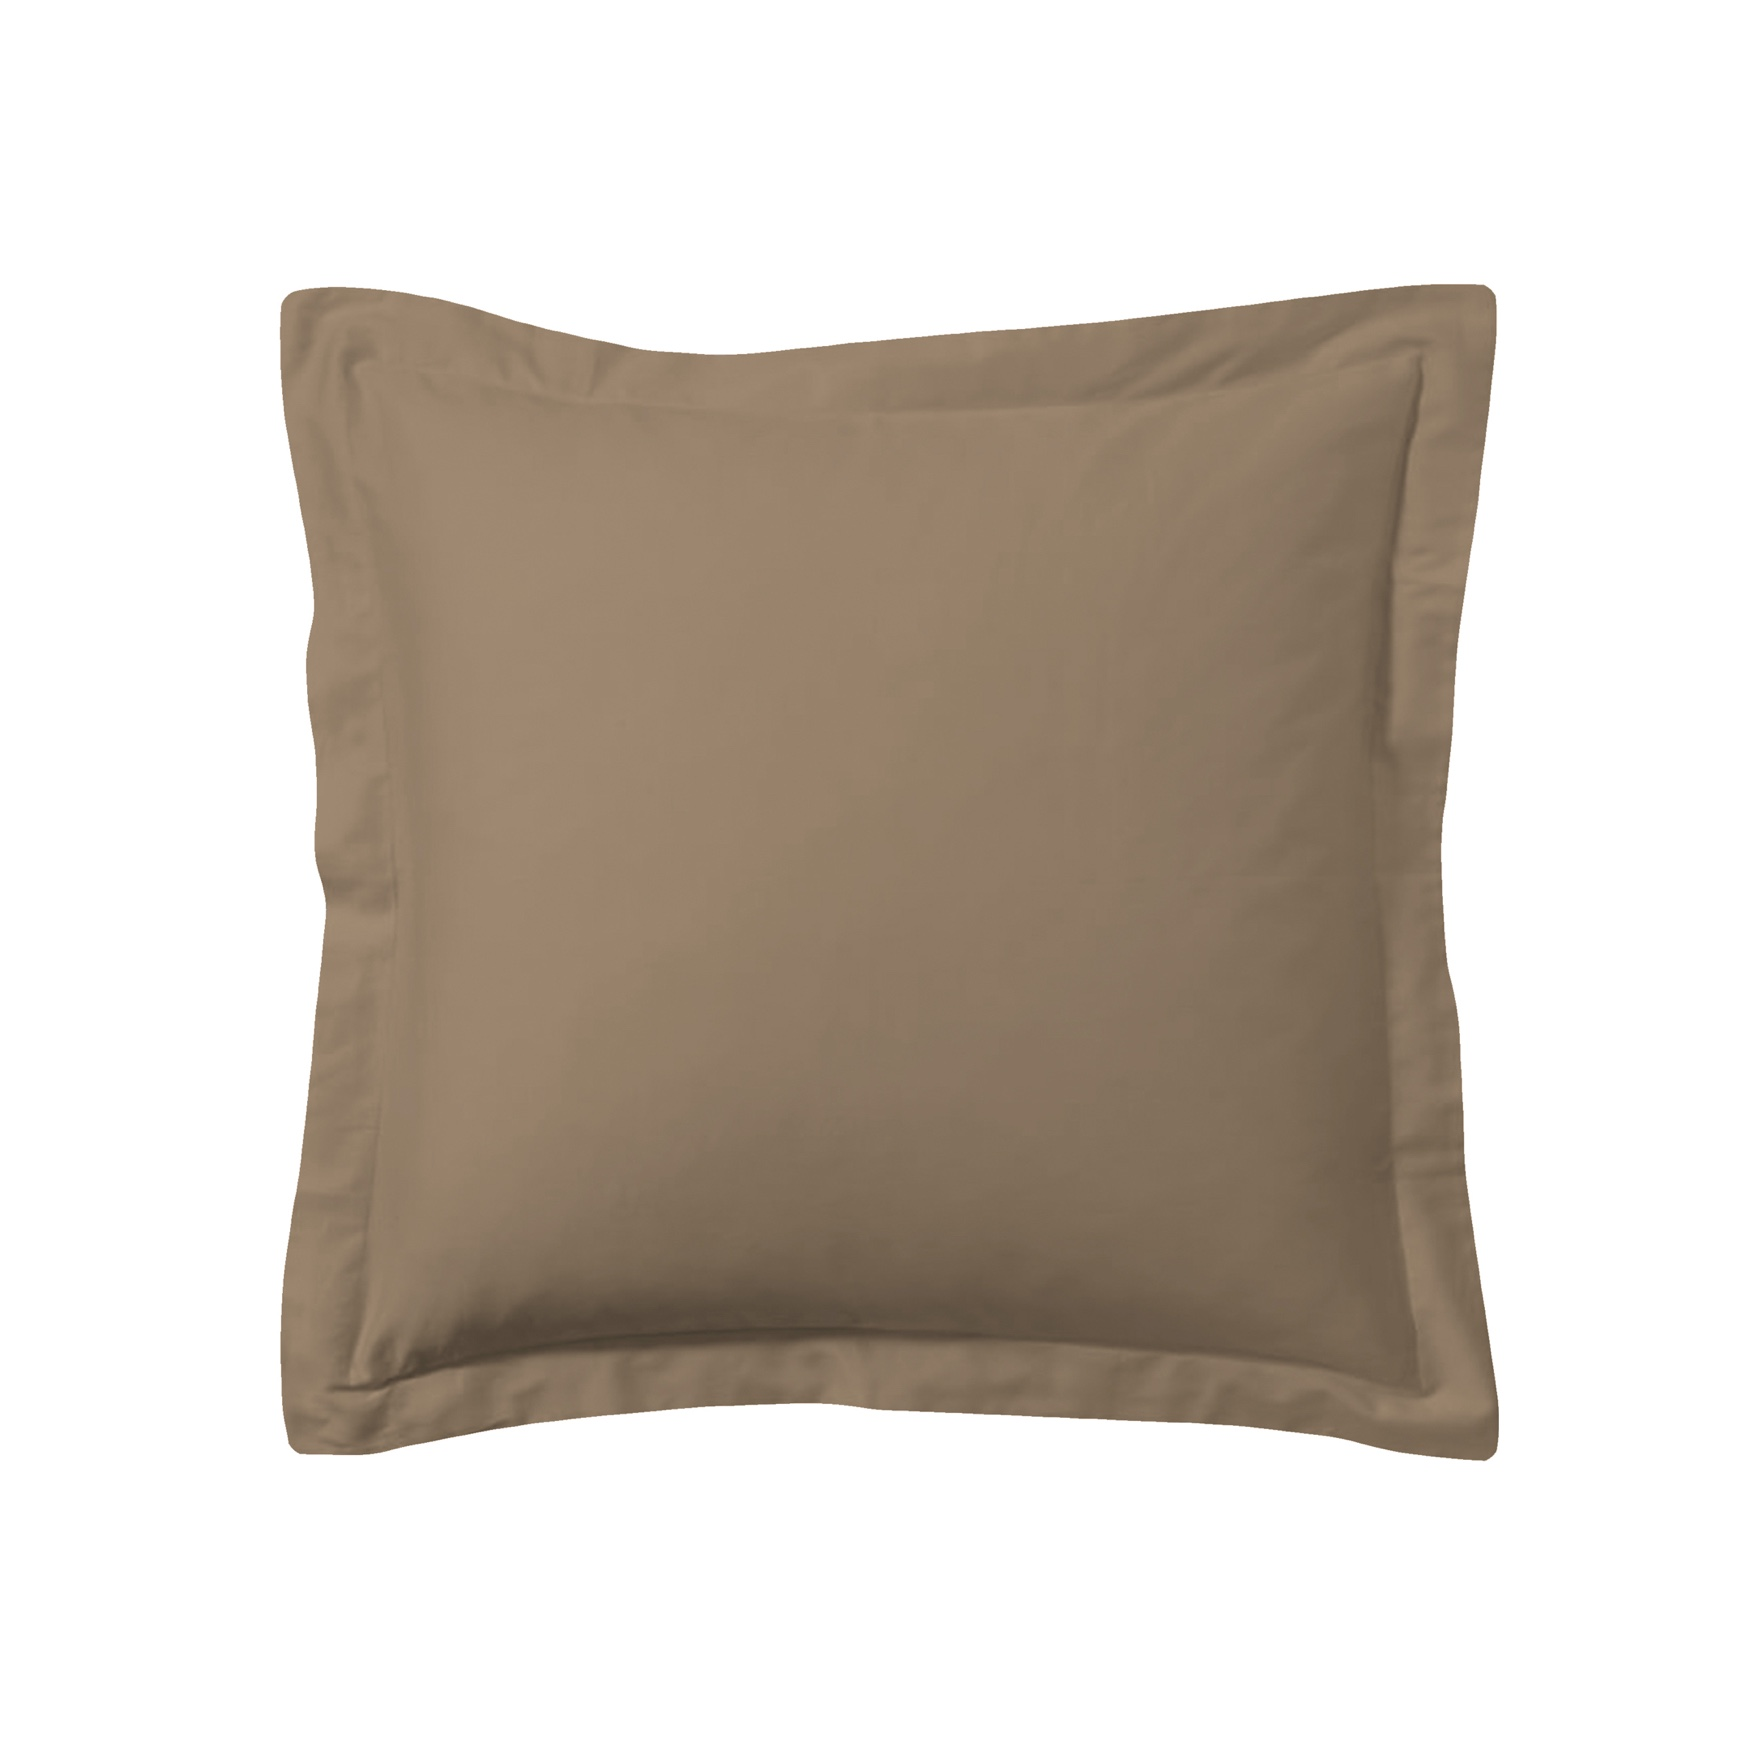 Bed Maker's Tailored Euro Pillow Sham,